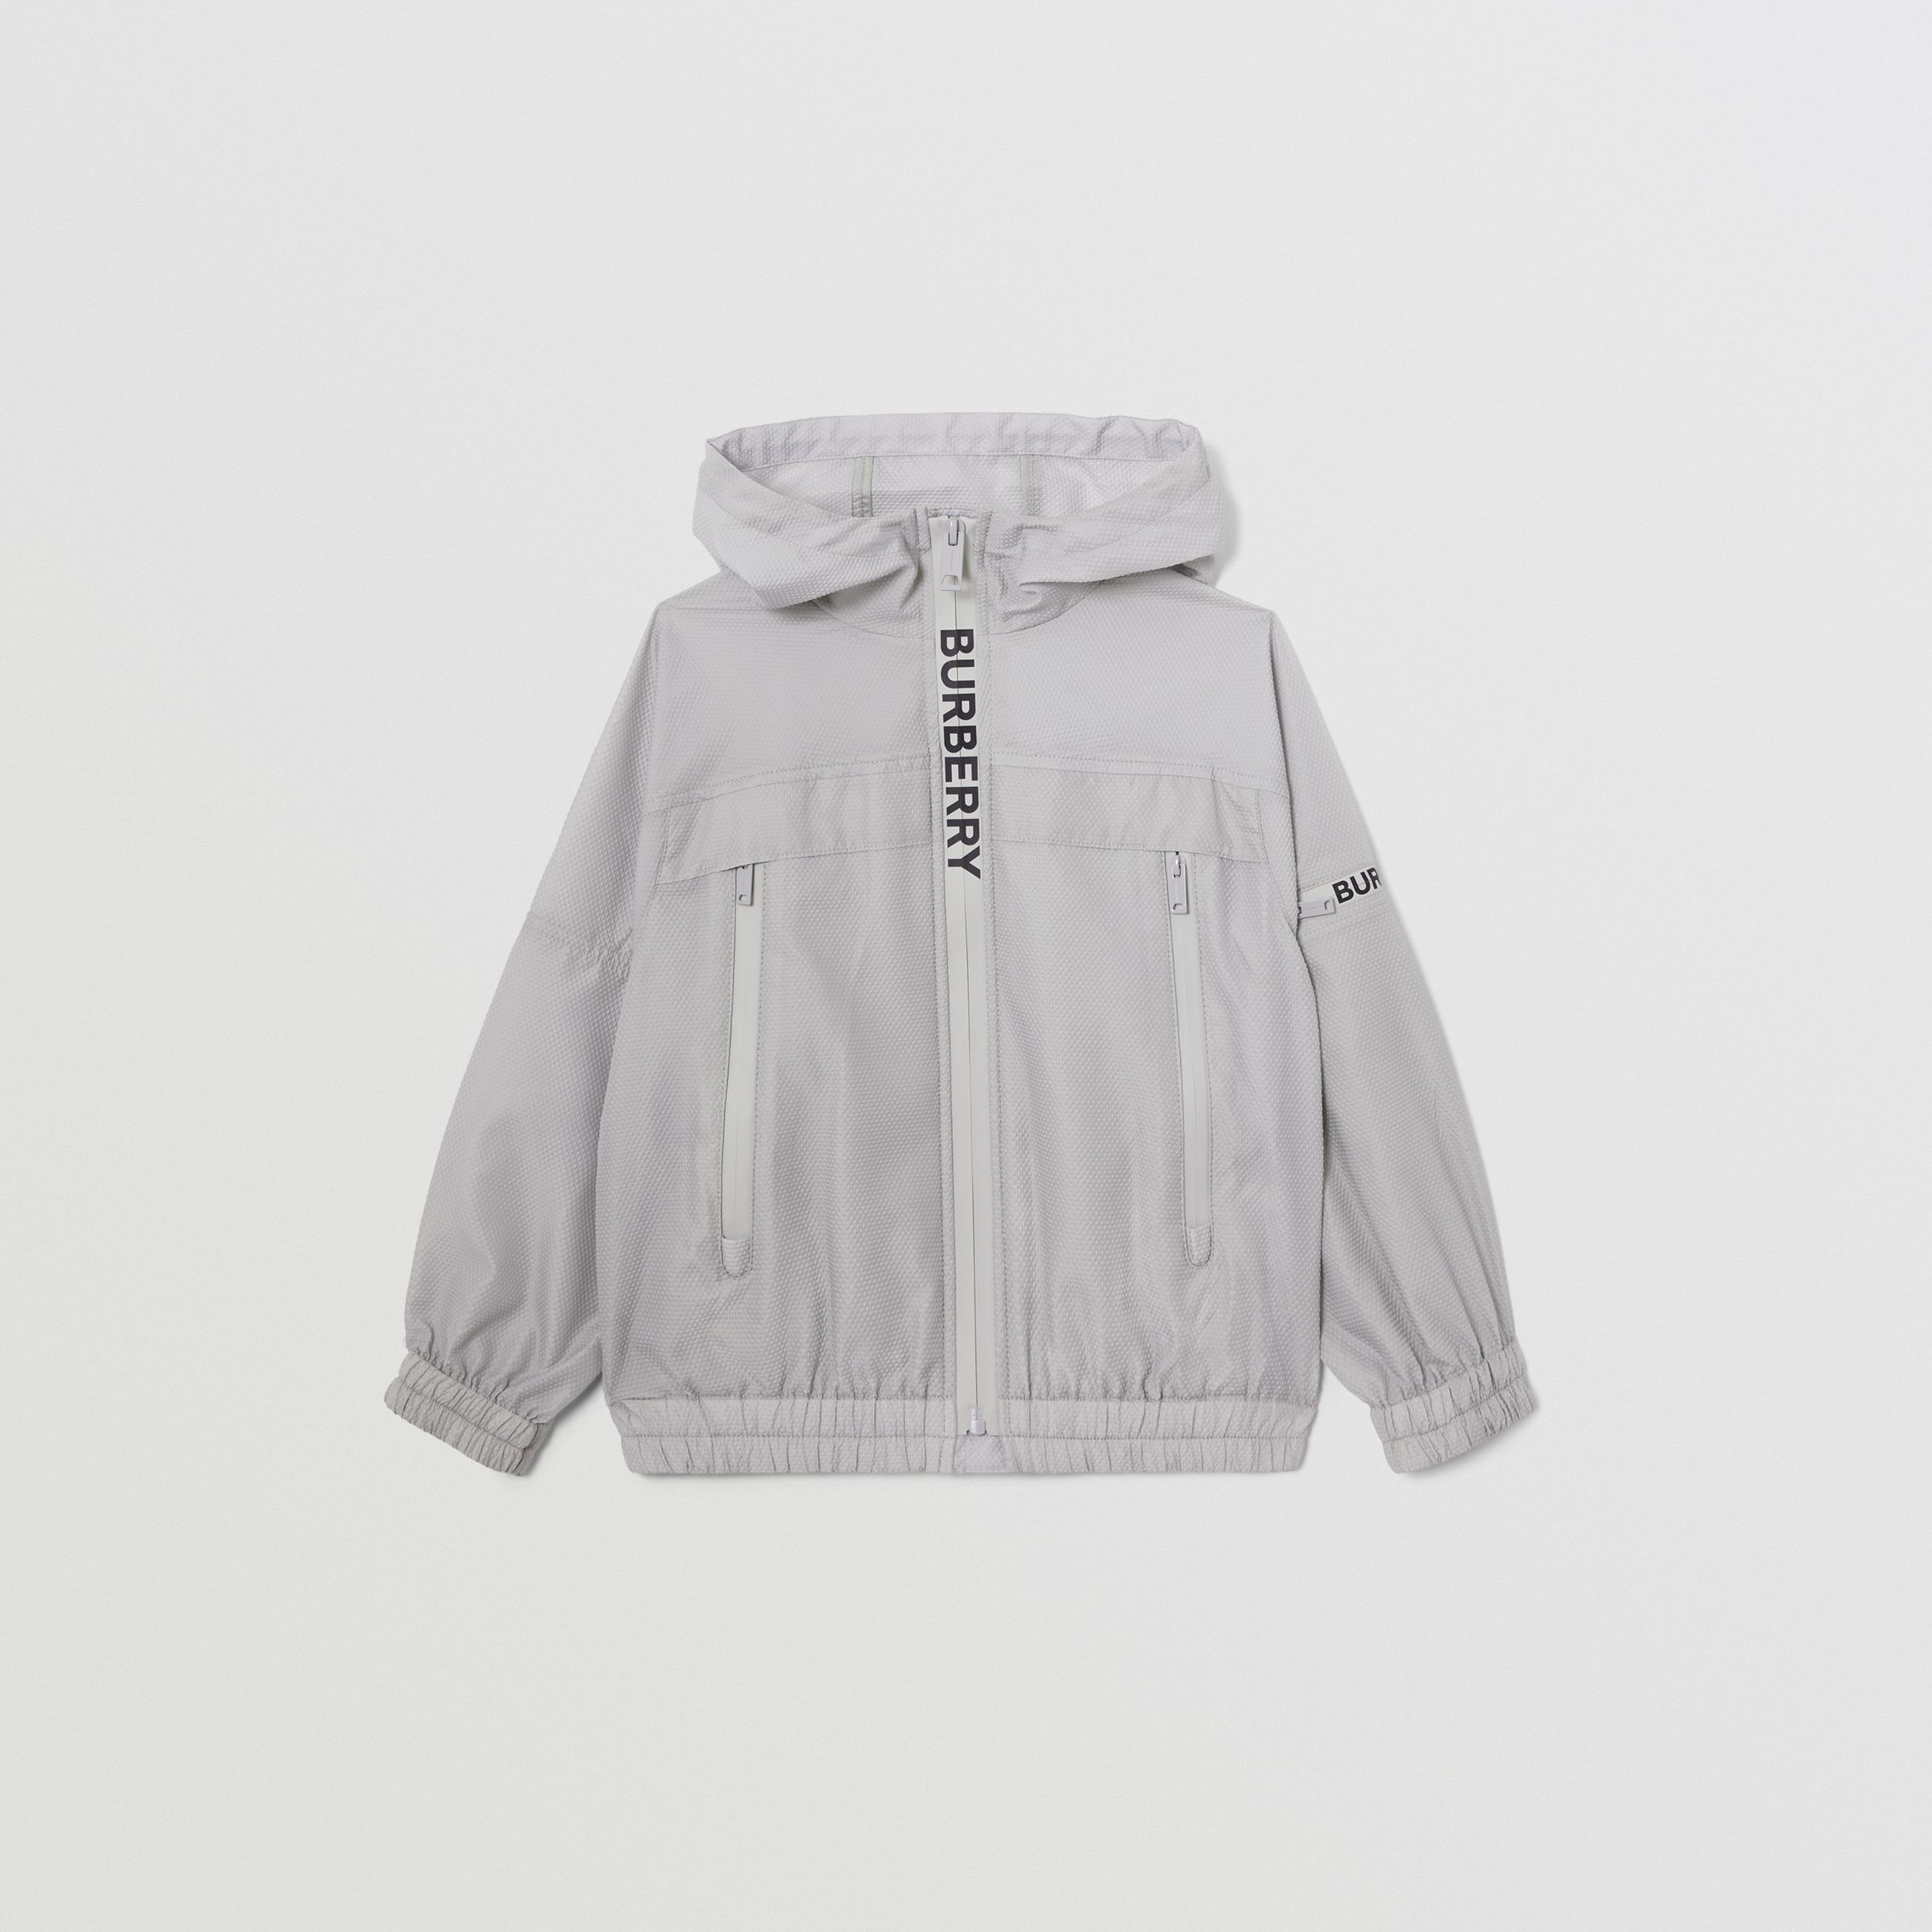 Logo Print Lightweight Hooded Jacket in Light Grey | Burberry - 1